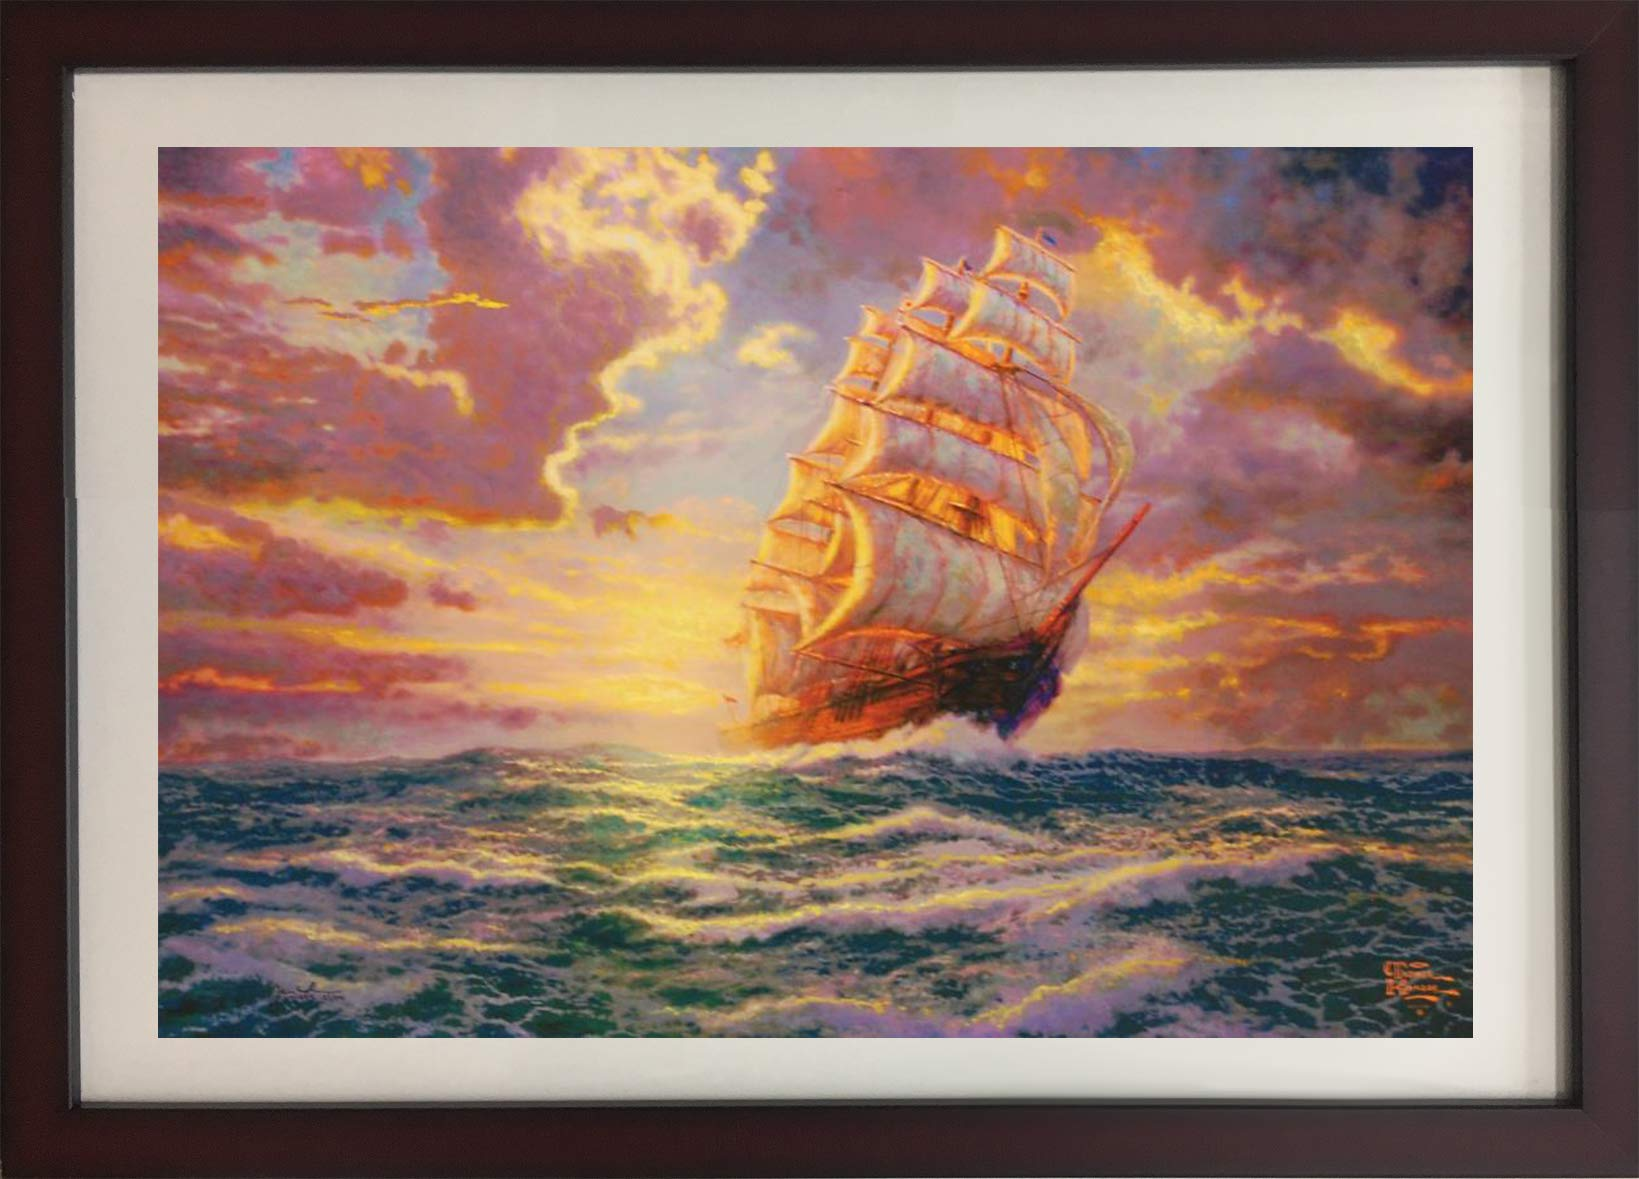 ''Courageous Voyage'' Original Thomas Kinkade Lithograph Fine Art Landscape Decorative by